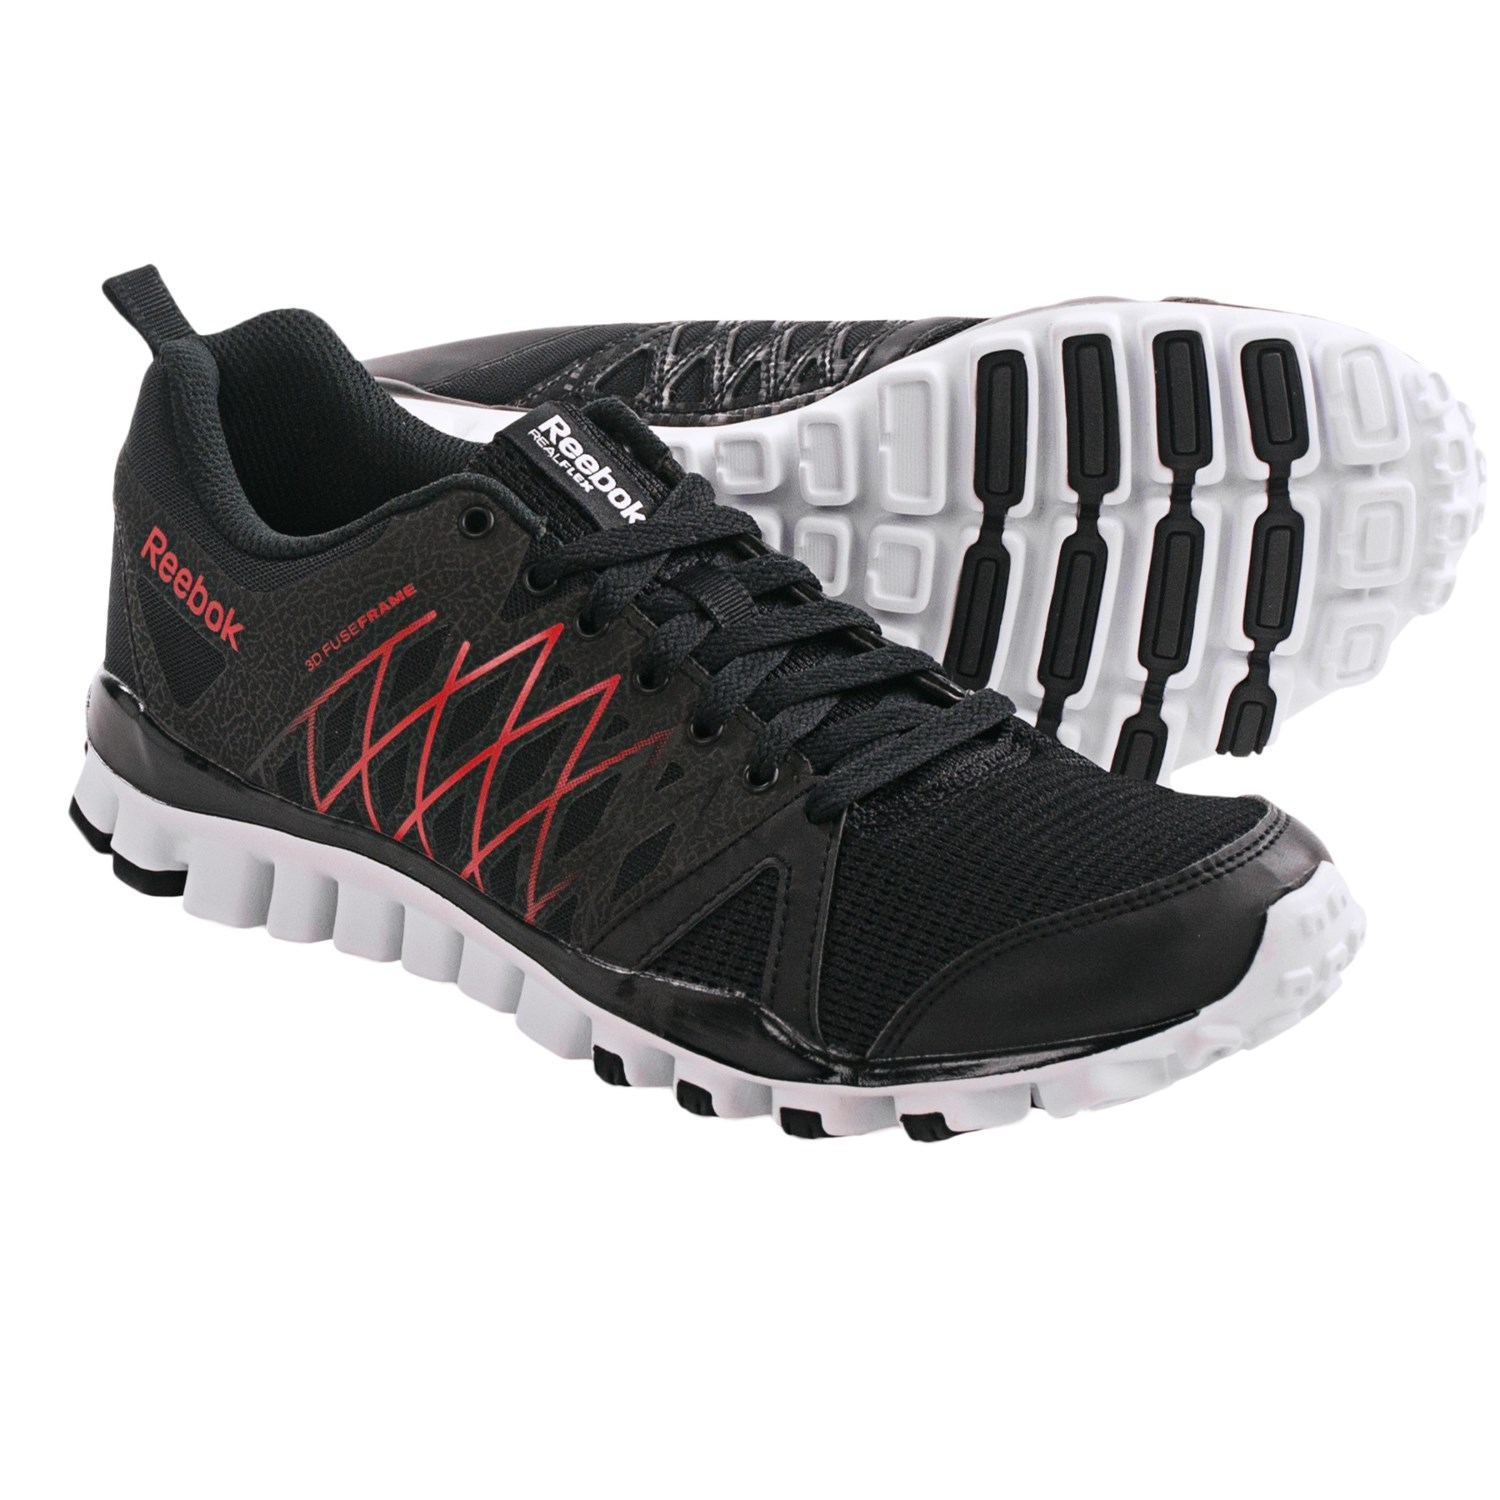 reebok realflex advance 20 training shoes for men 8326y